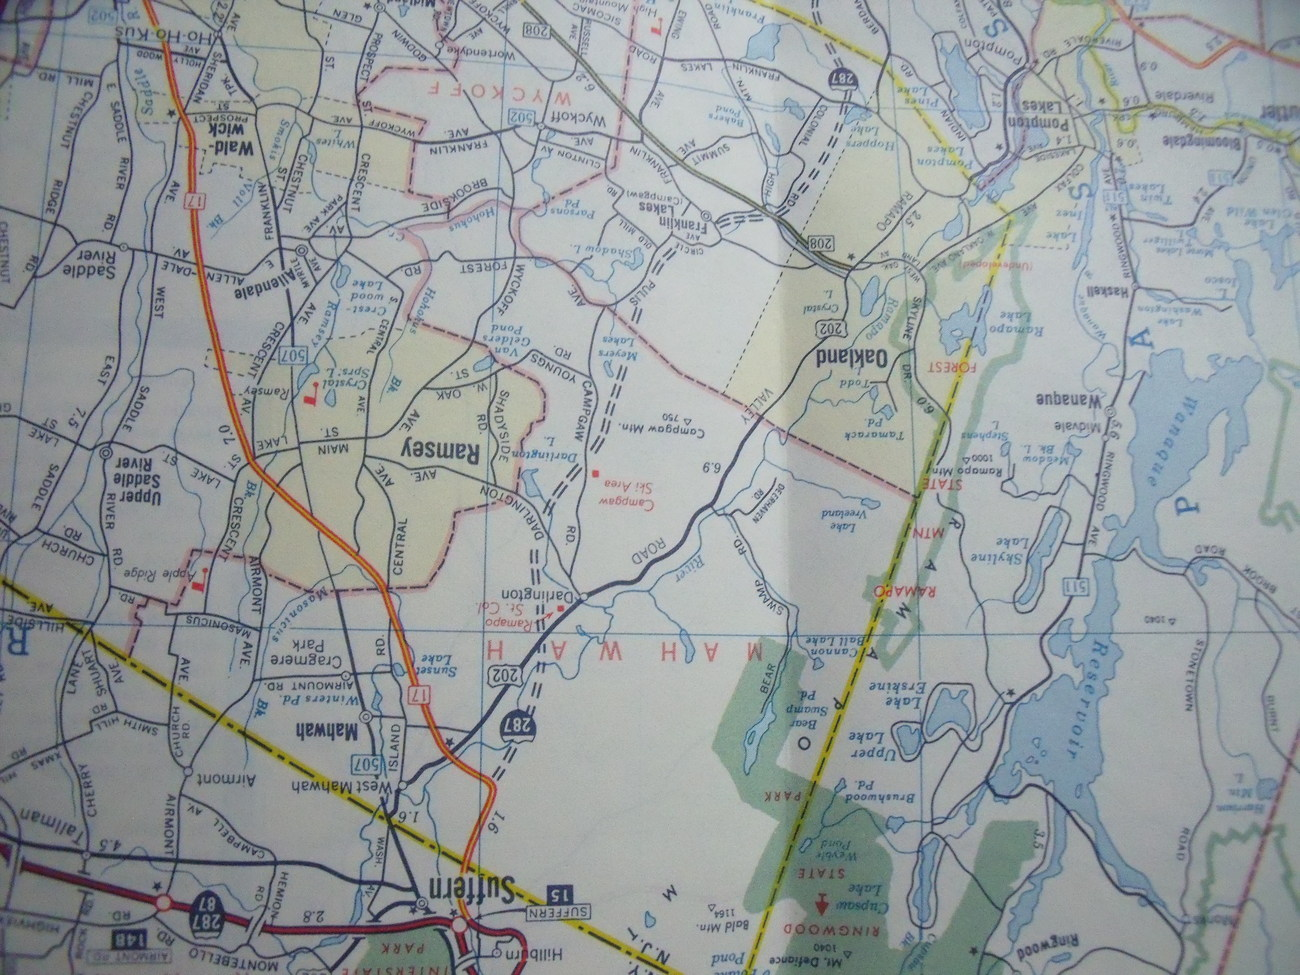 Exxon New Jersey State Map